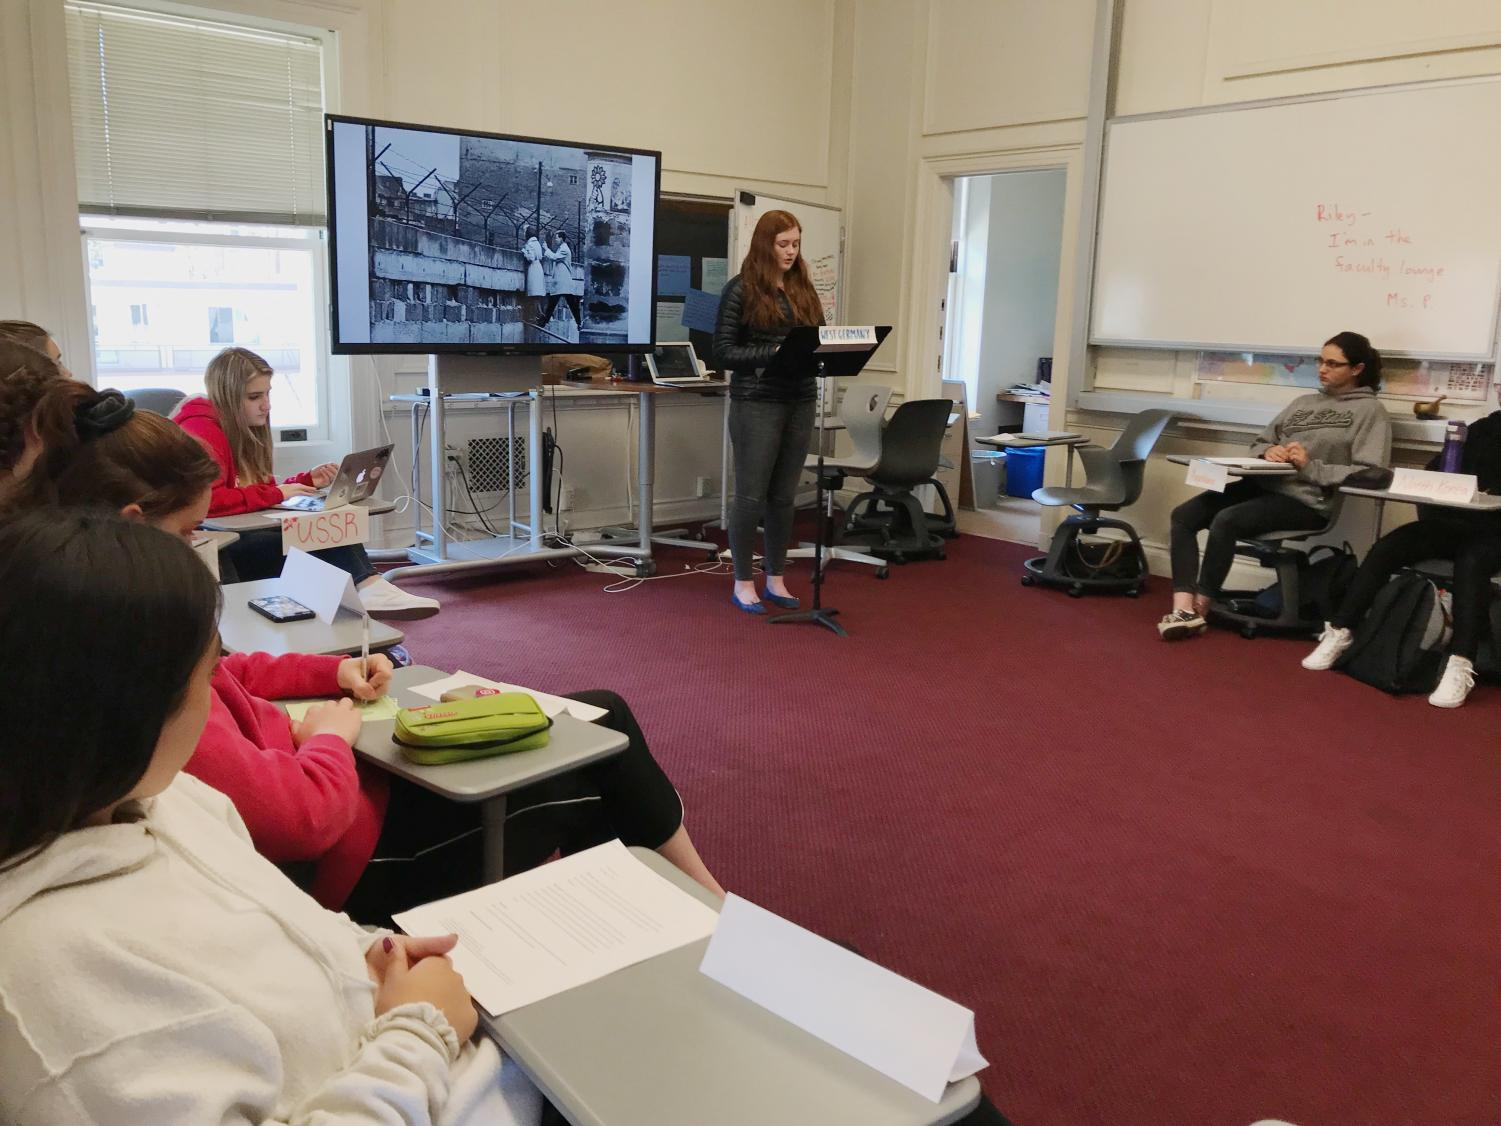 Sophomore Lauren Tulley represented West Germany in the mock UN conference. Students were required to add a picture to their speech to supplement their performance.